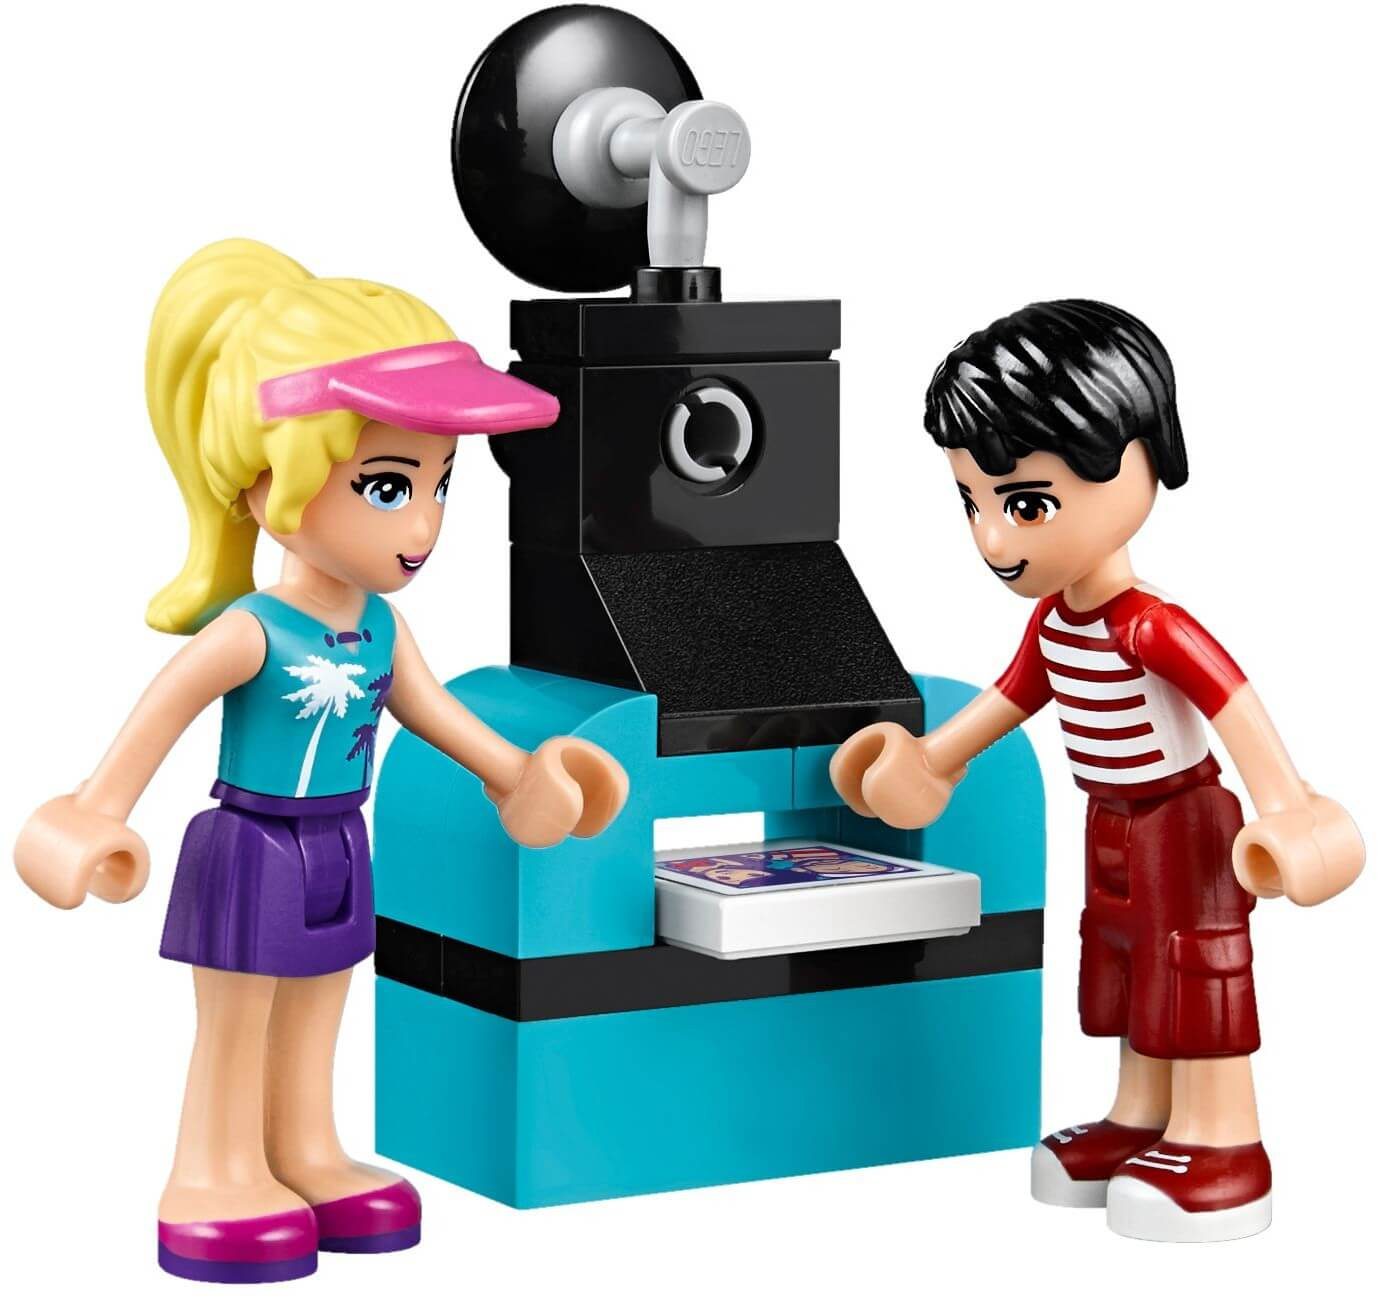 Mua đồ chơi LEGO 41129 - LEGO Friends 41129 - Xe Tải Hot Dog Stephenie (LEGO Friends Amusement Park Hot Dog Van 41129)